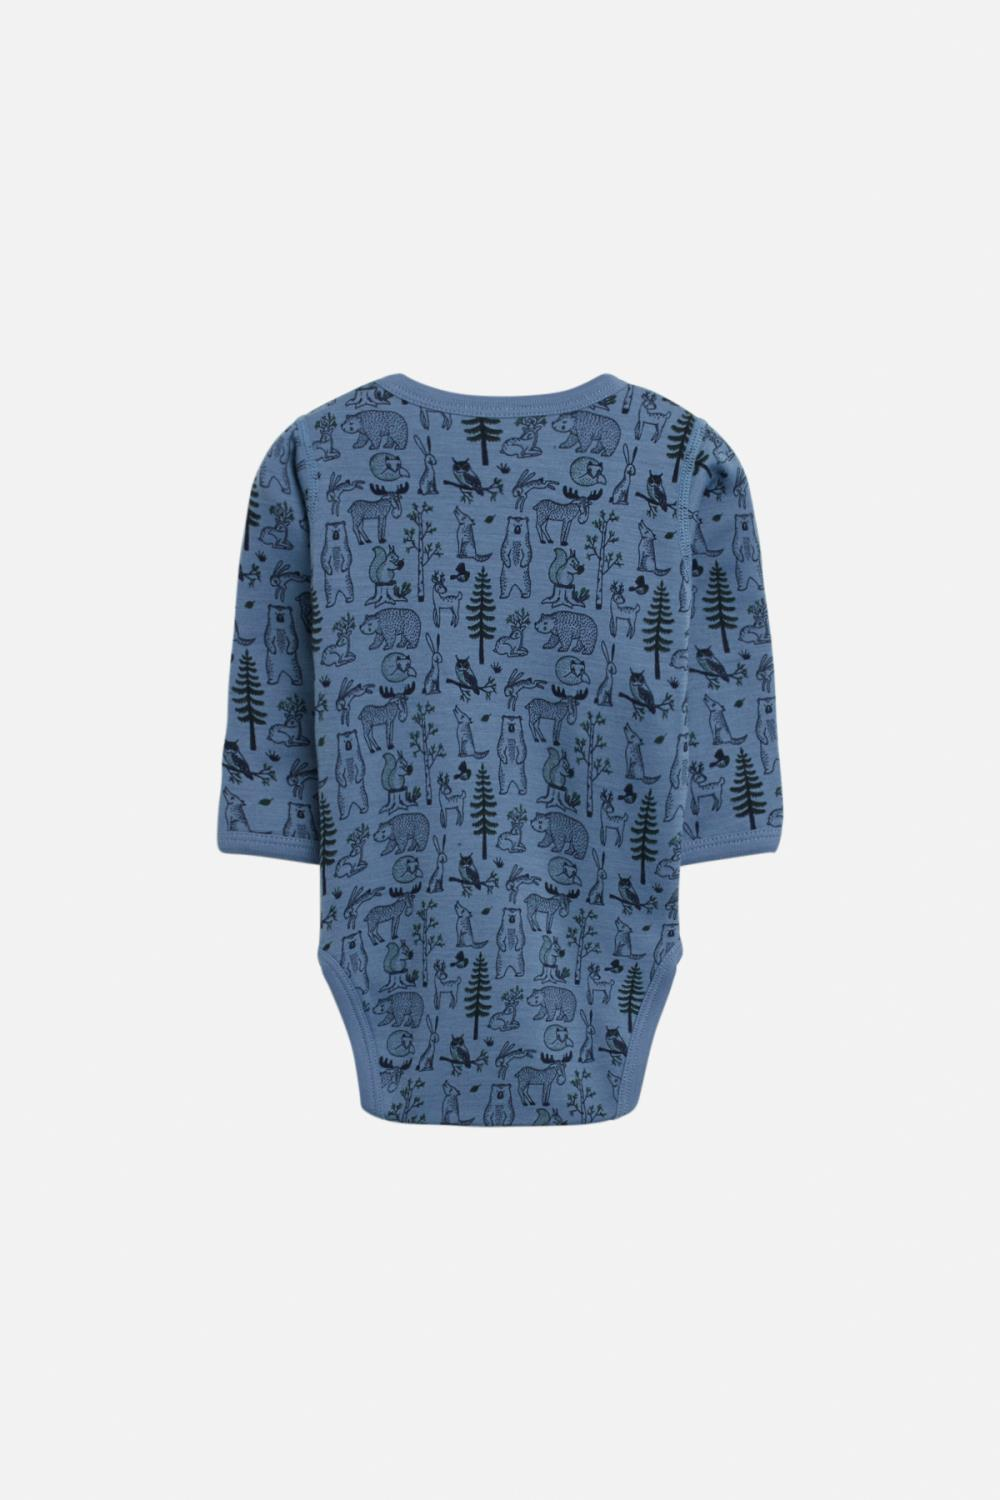 Hust and Claire - AW 20 Body Bo skog i merionoull, blue grass